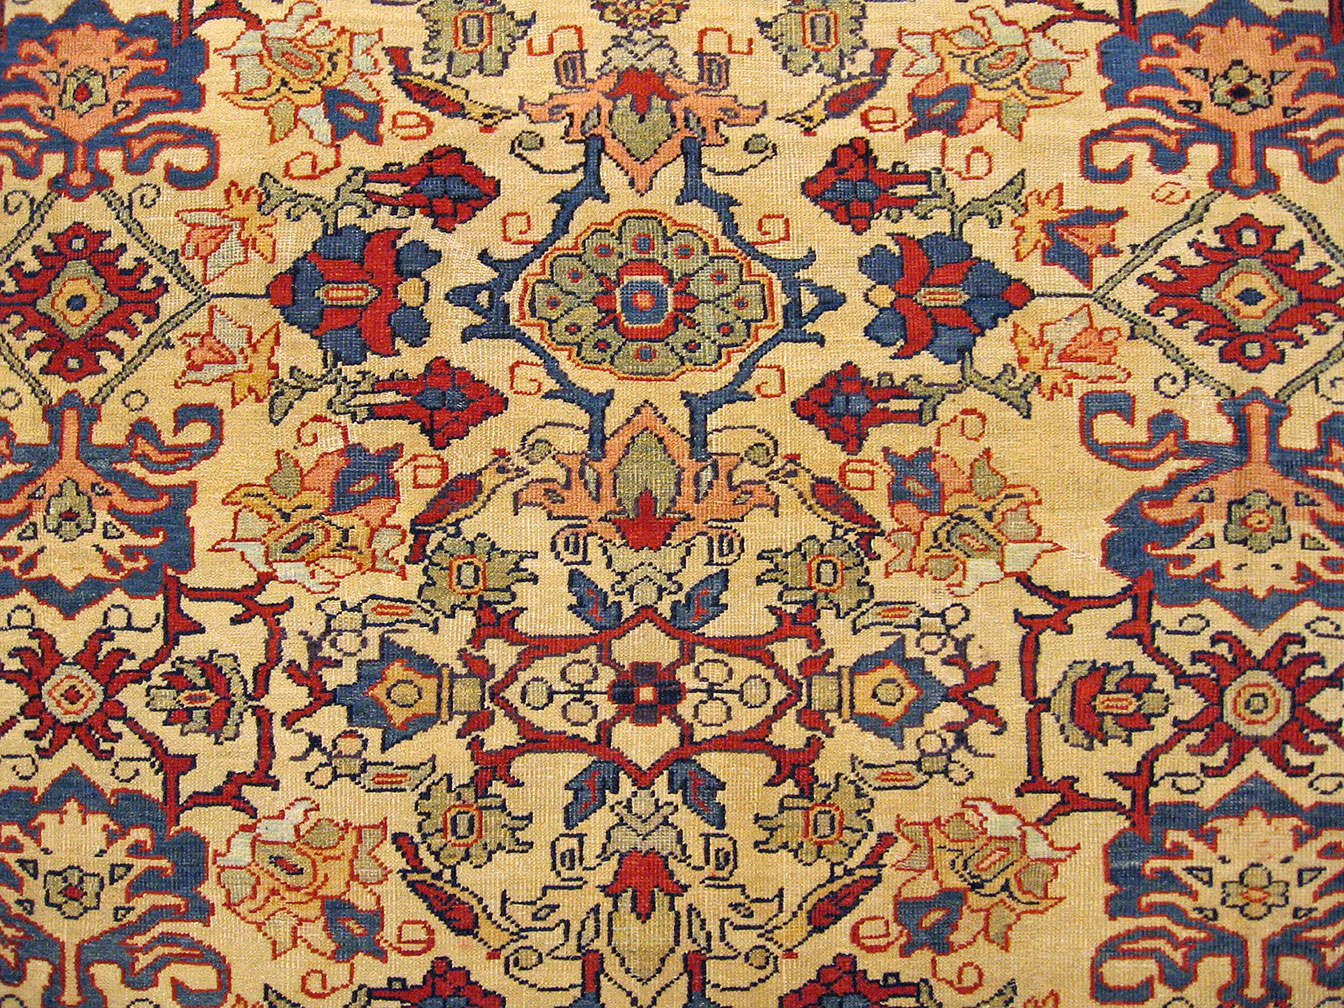 Antique sultan abad Carpet - # 52219